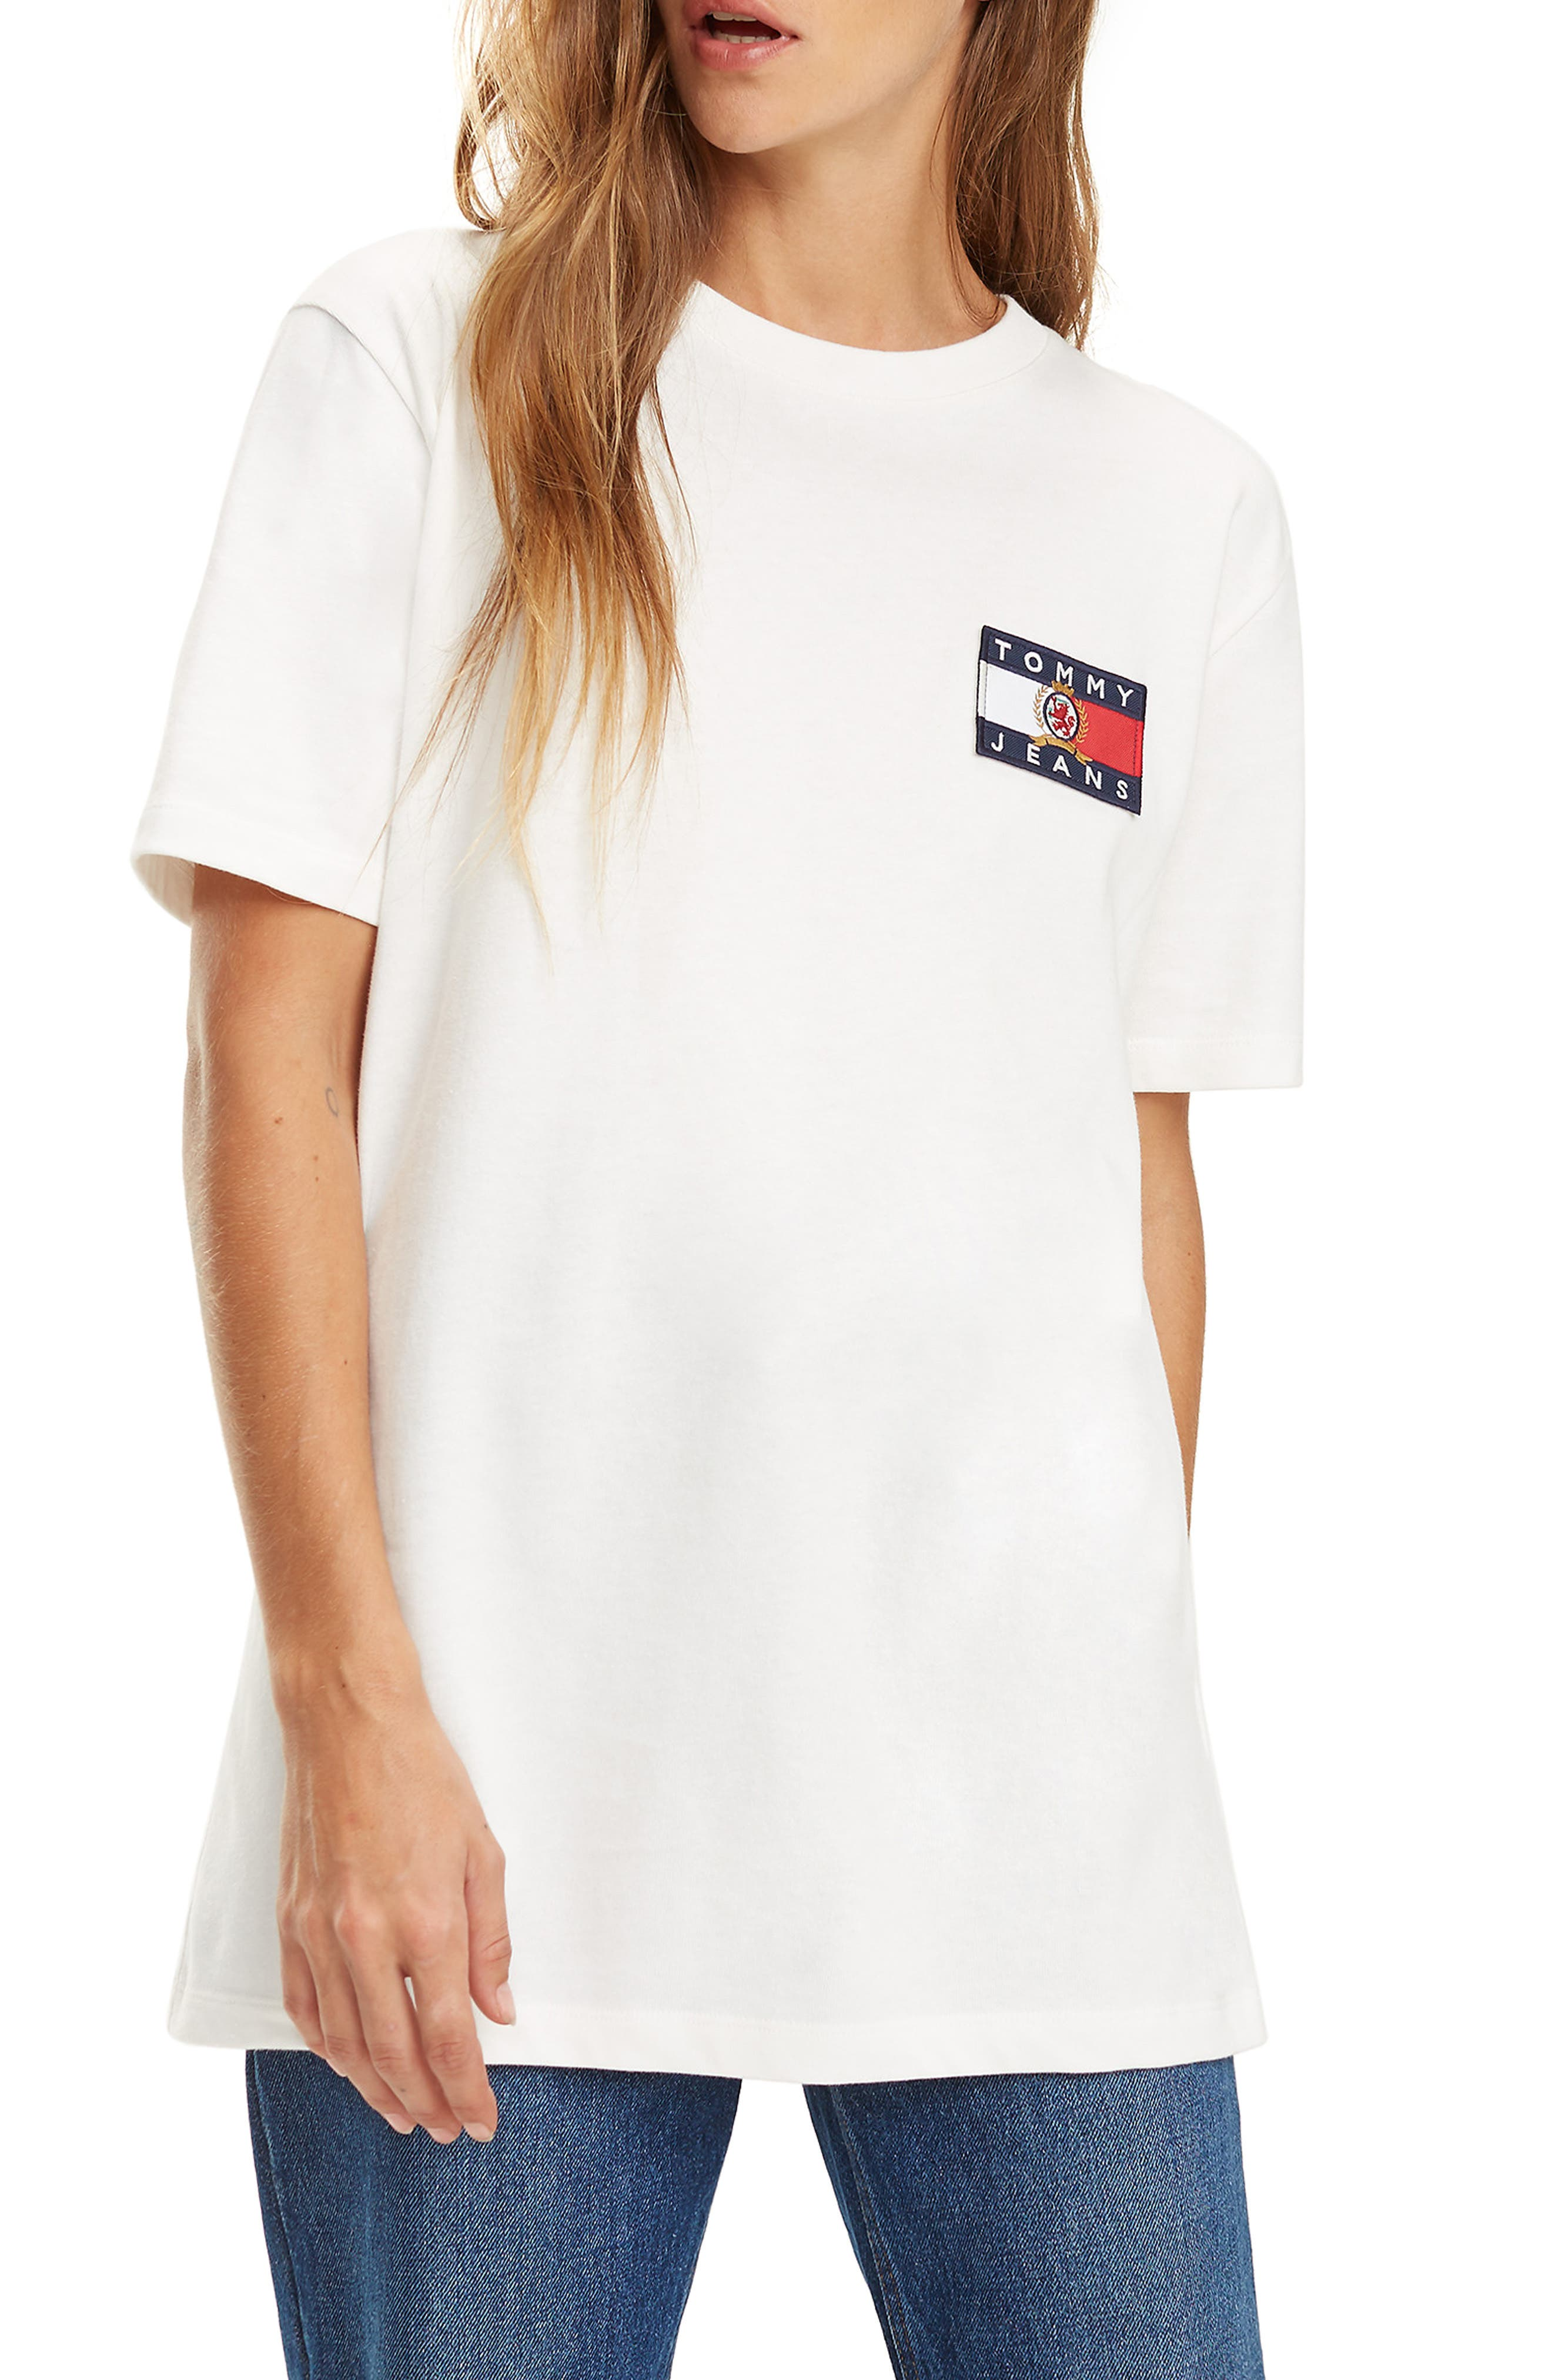 TOMMY JEANS,                             Crest Capsule Flag Tee,                             Main thumbnail 1, color,                             100